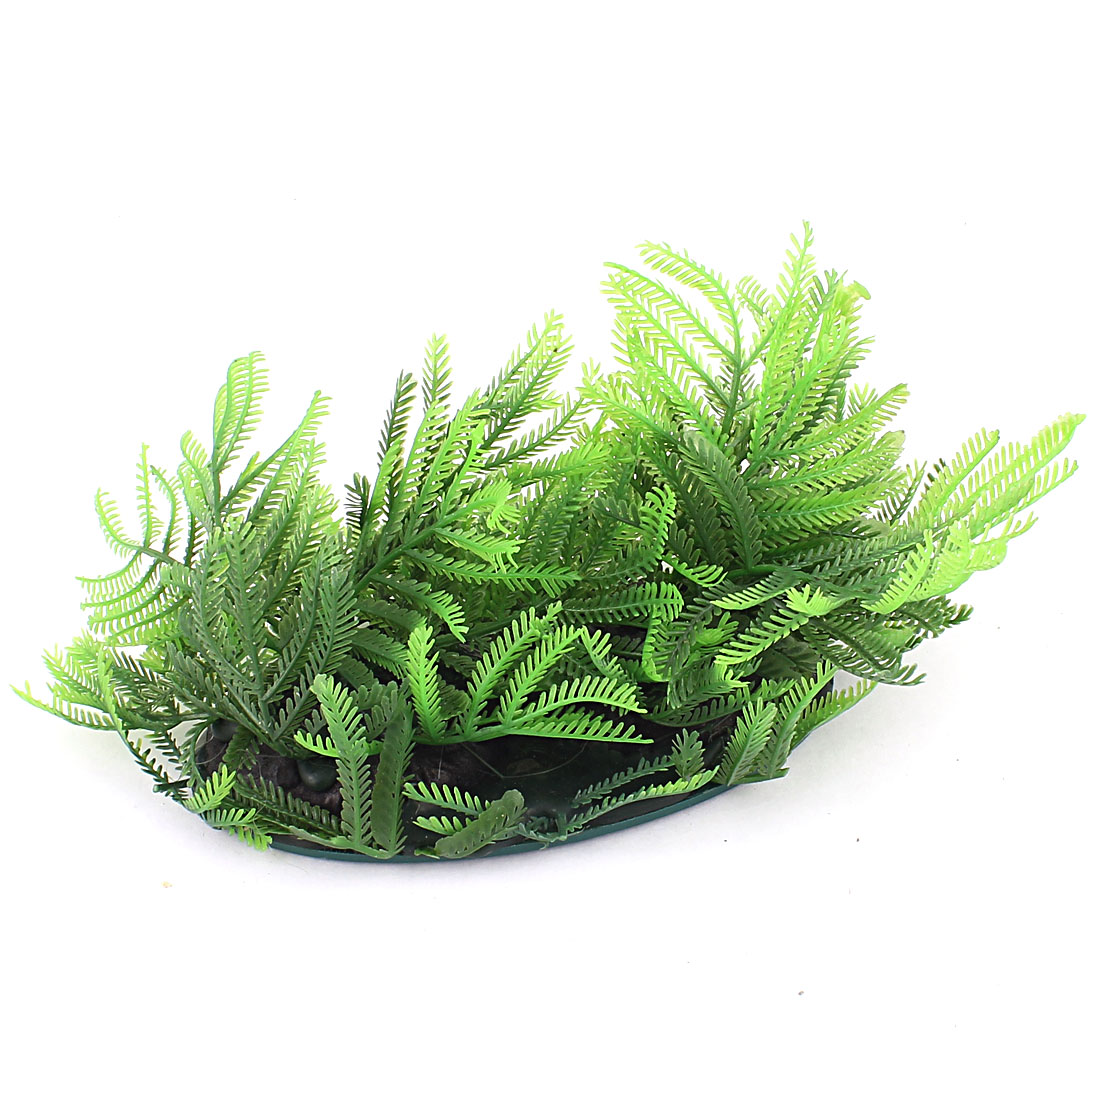 Plastic Leaf Moss Accent Aquatic Plant Fish Tank Aquarium Decor Green